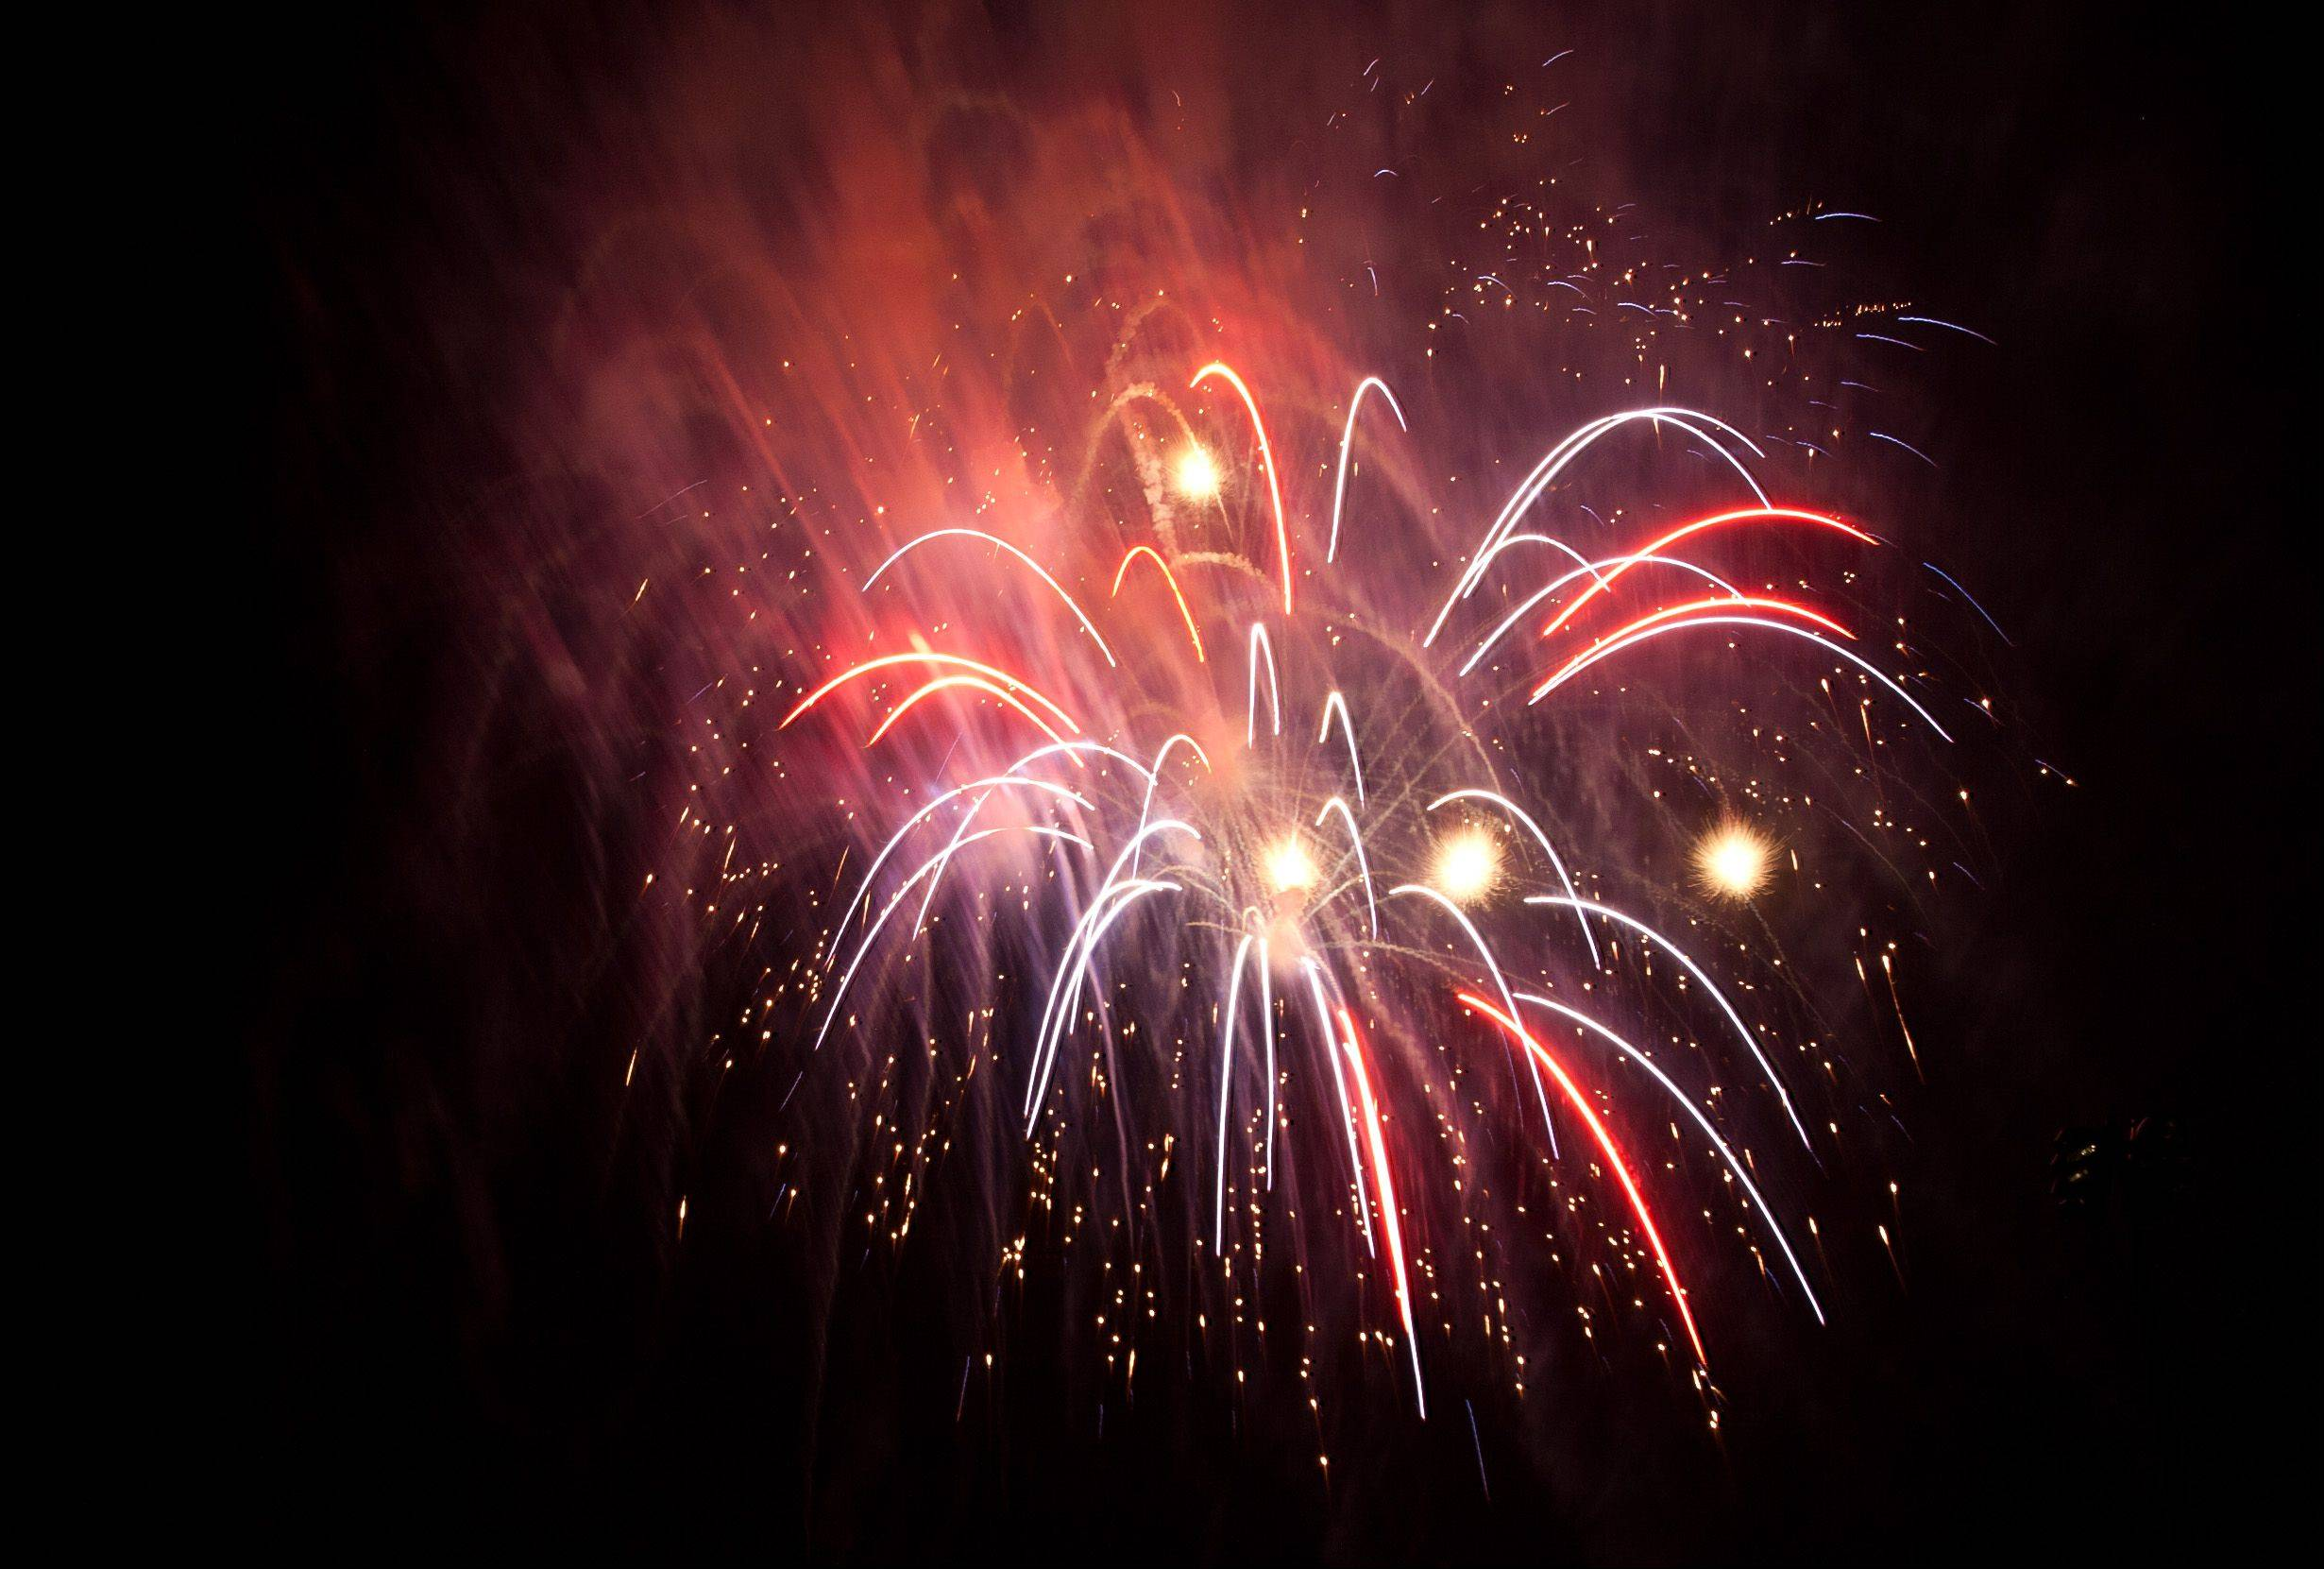 The annual Naperville fireworks show begins at 9:30 p.m. Thursday, July 4, in Knoch Park.